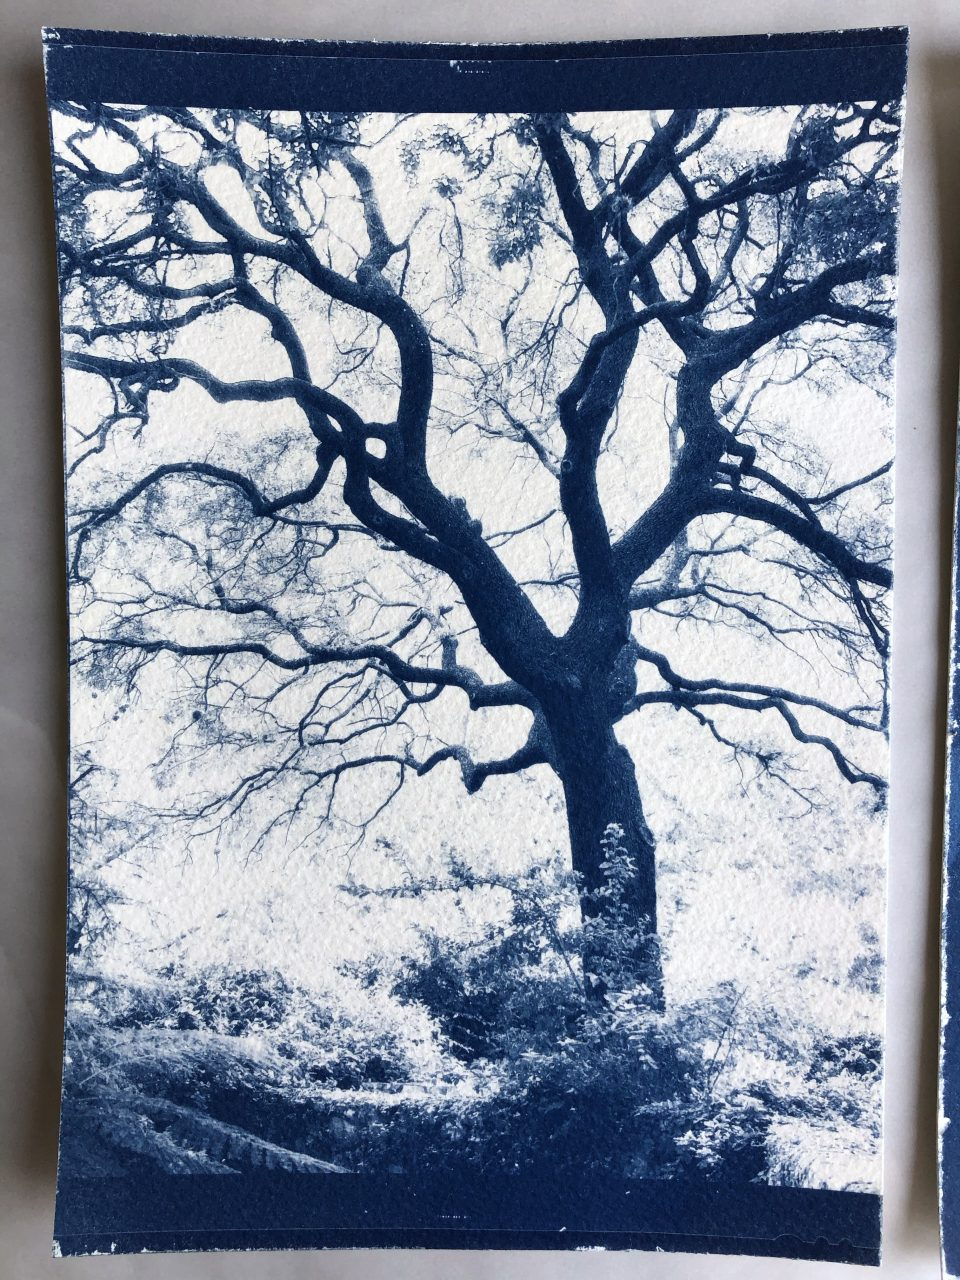 Cyanotype print of a giant oak tree made from an 8 x 10 film negative